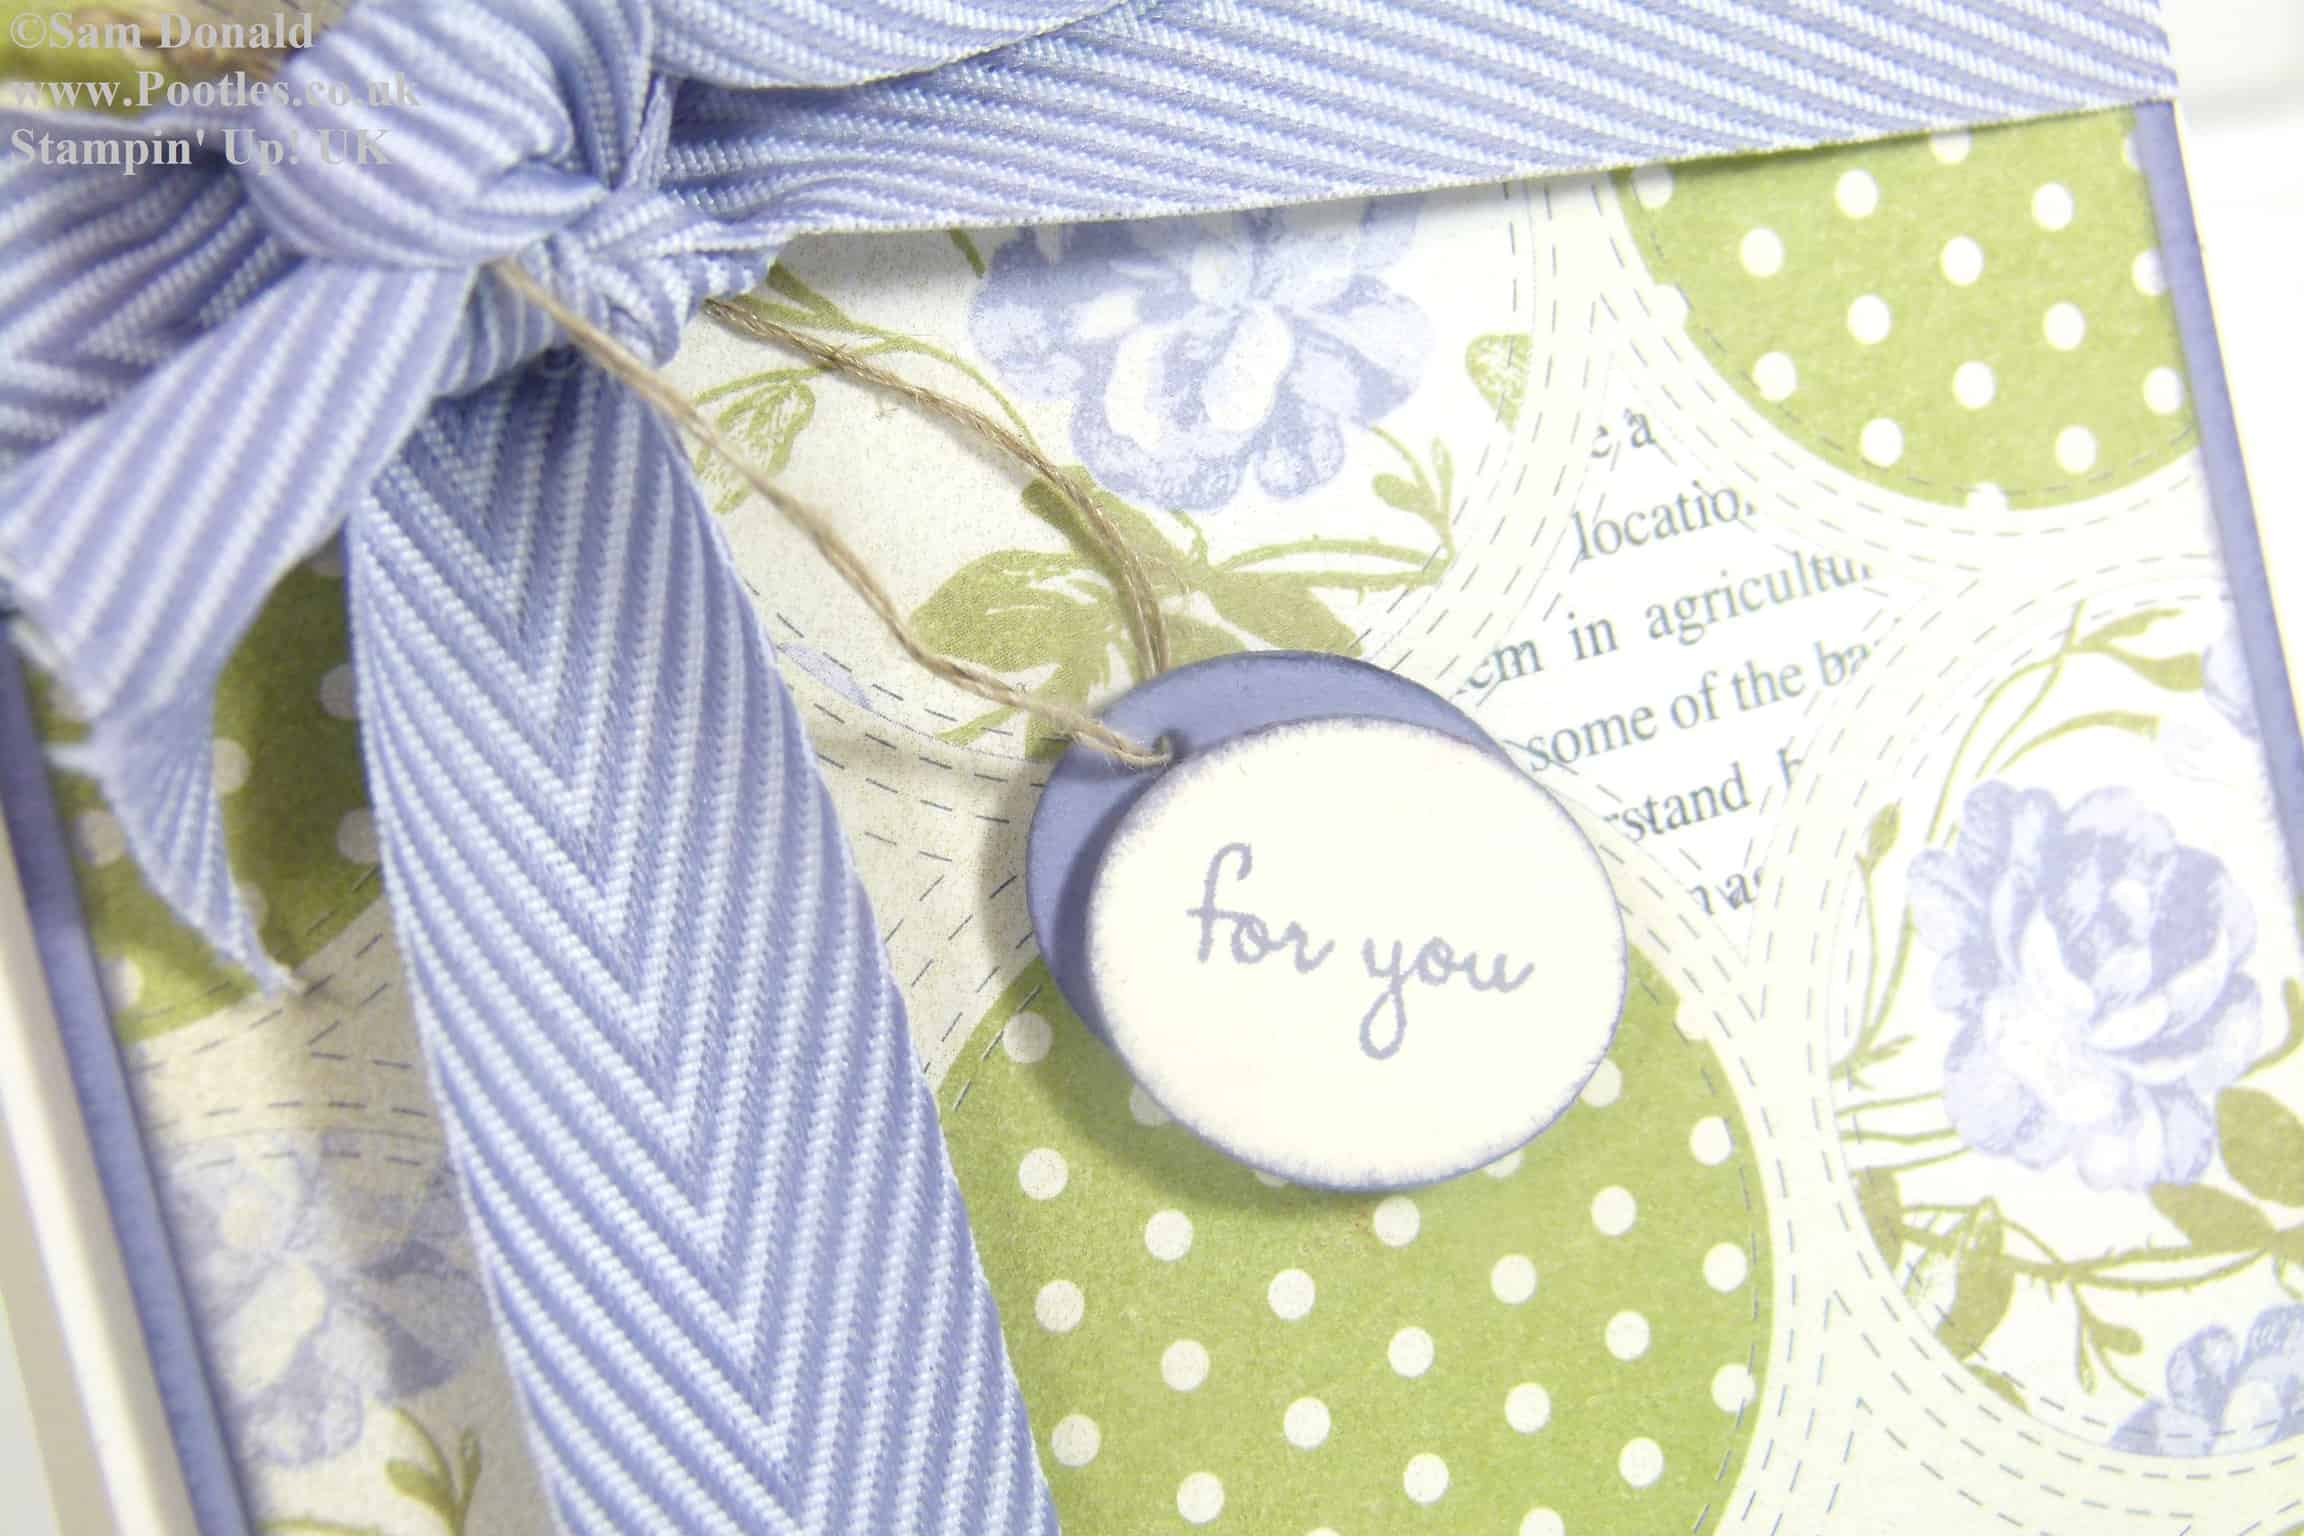 POOTLES Stampin Up UK Afternoon Picnic Wisteria Wonder